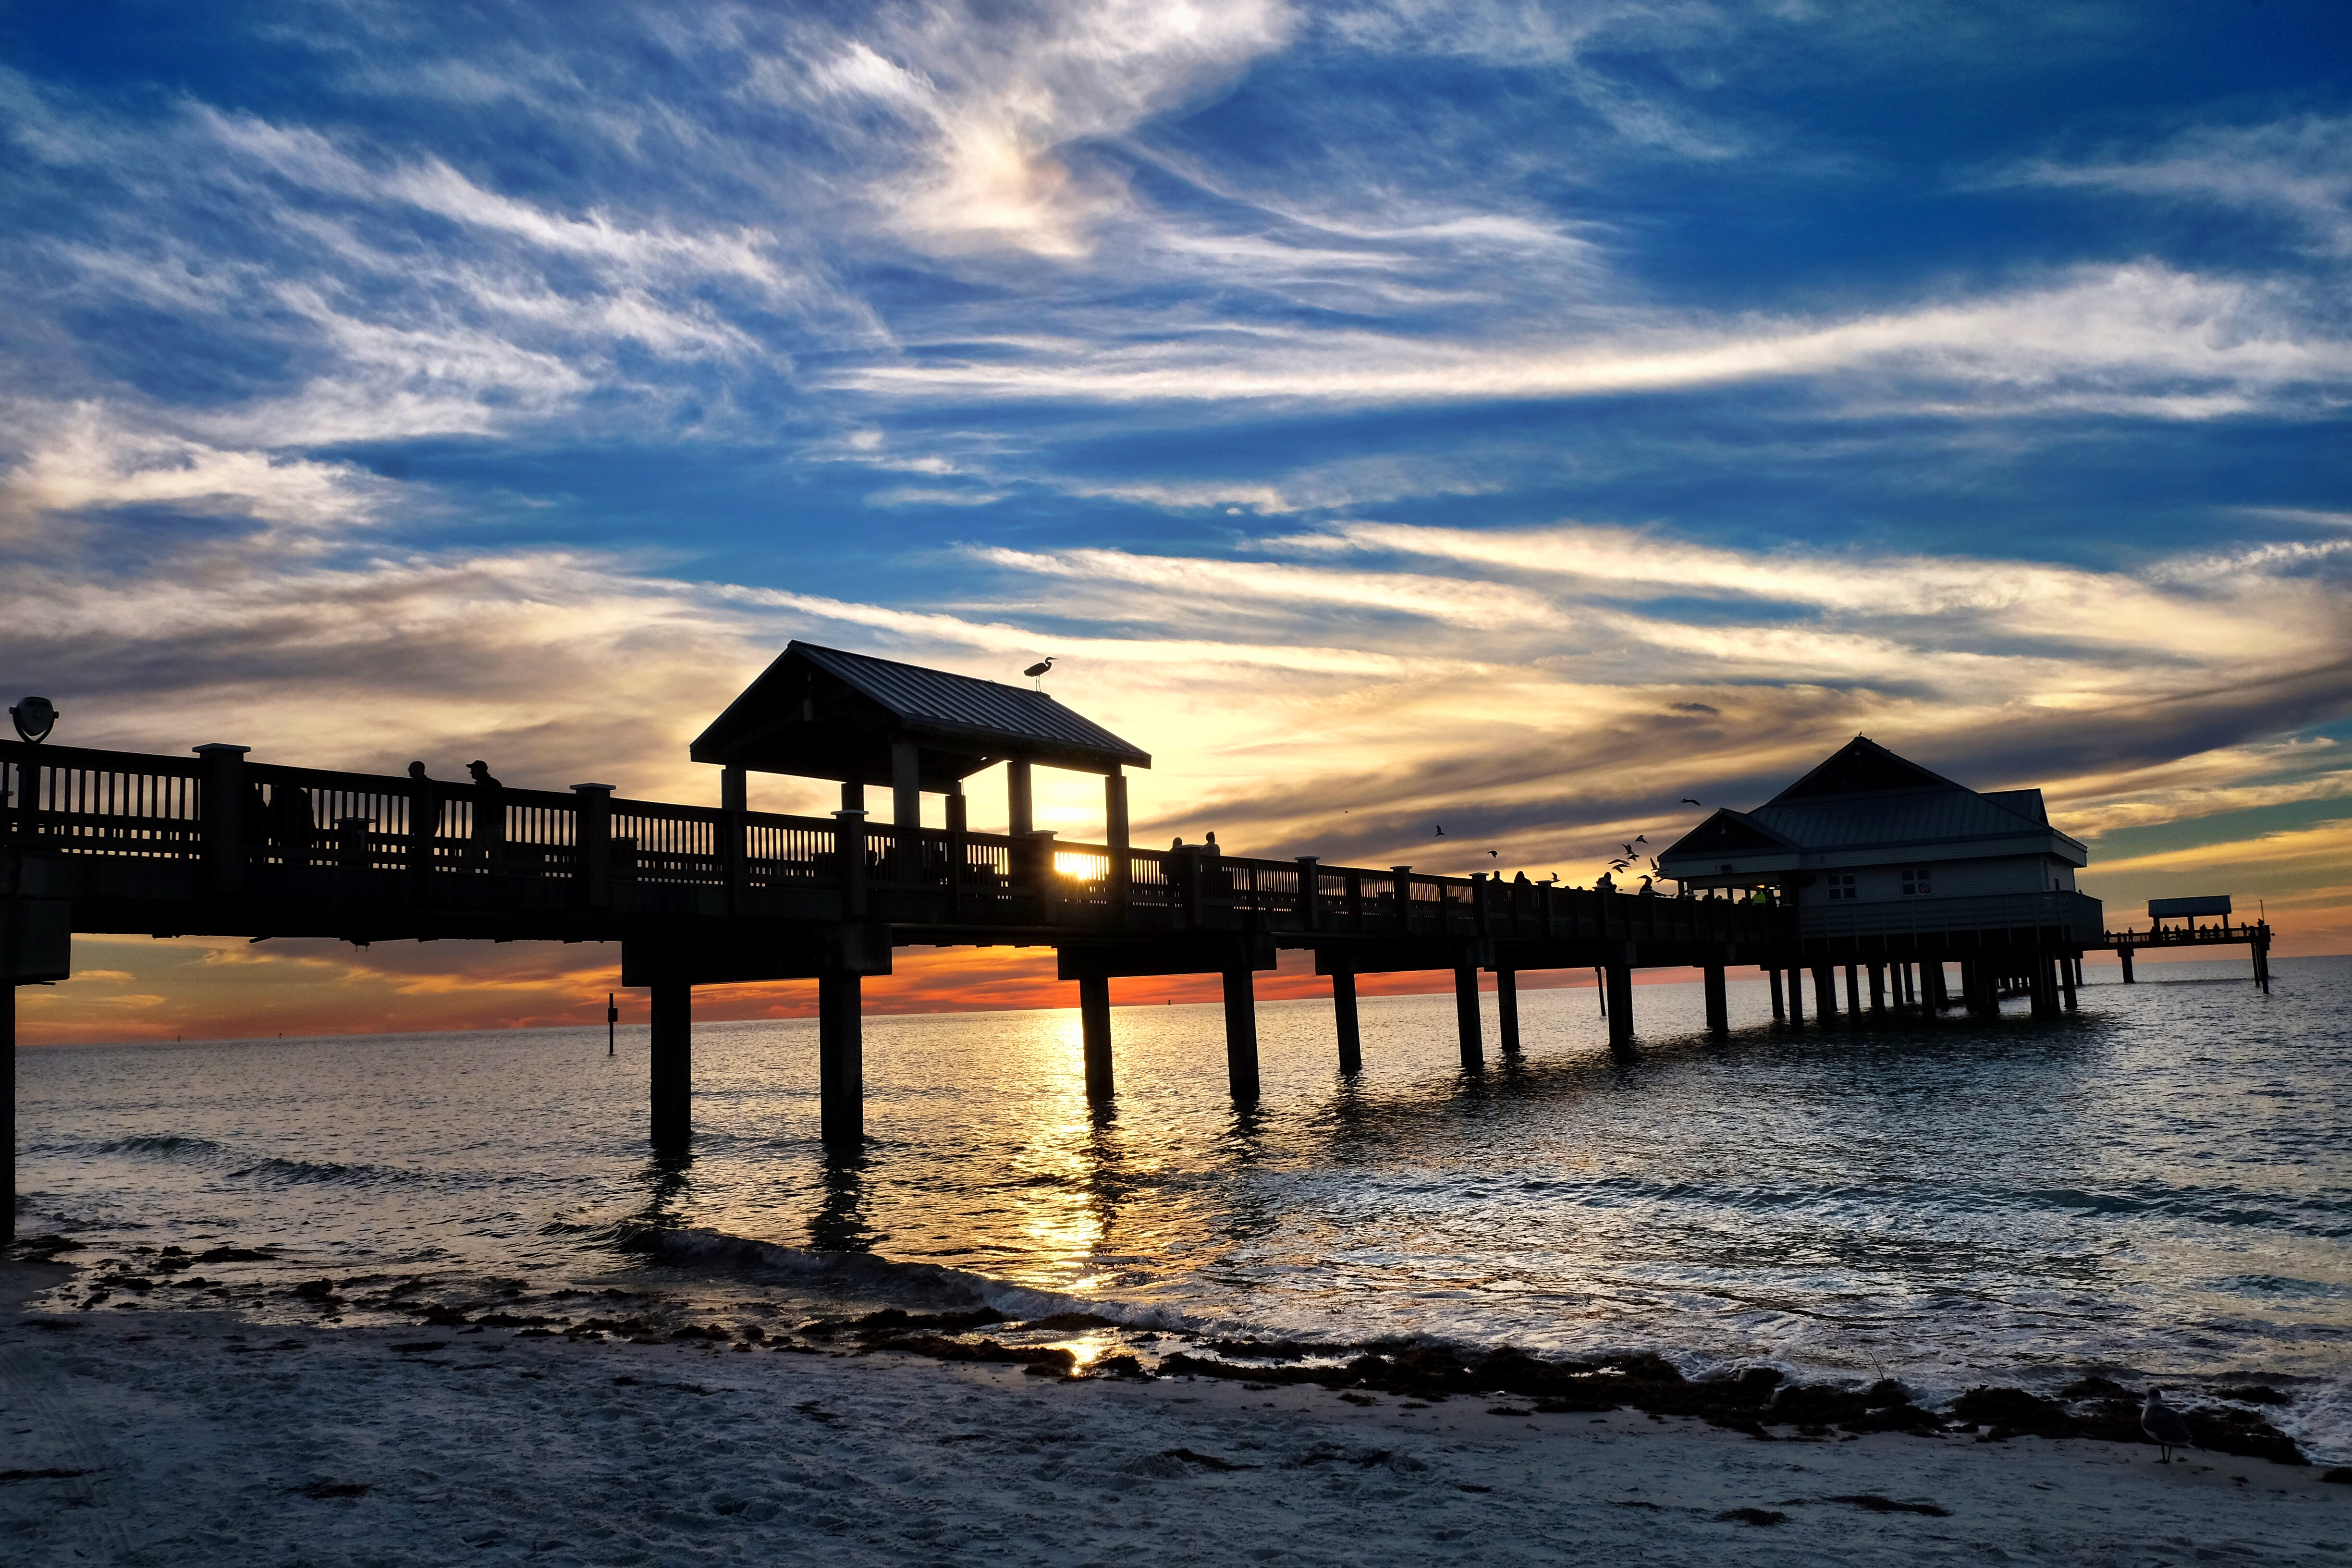 Sunsets are almost always great at Clearwater Beach. This one turned out a little better than most. - JIM BYERS PHOTO